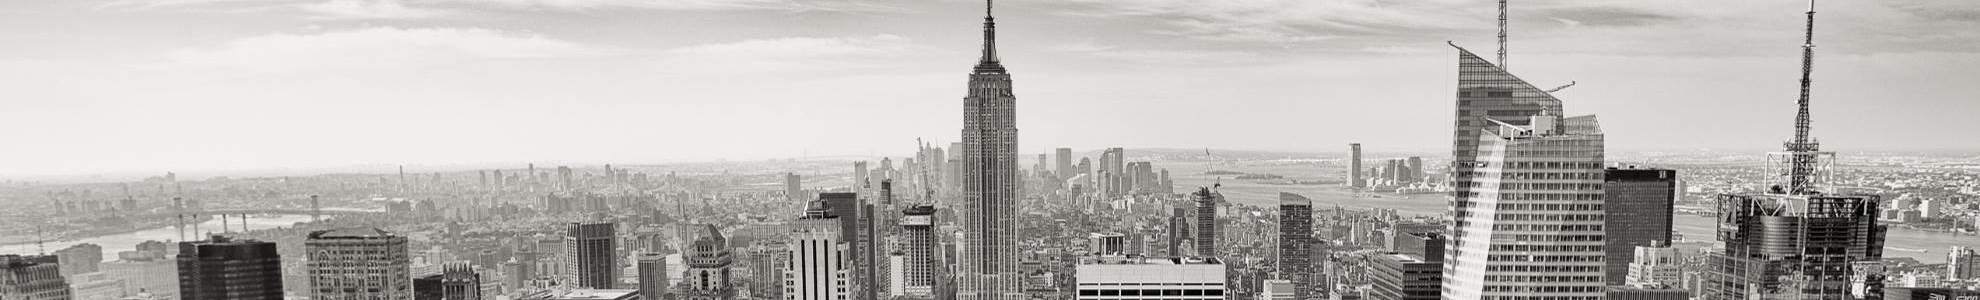 A panoramic view of the new york skyline and the empire state building